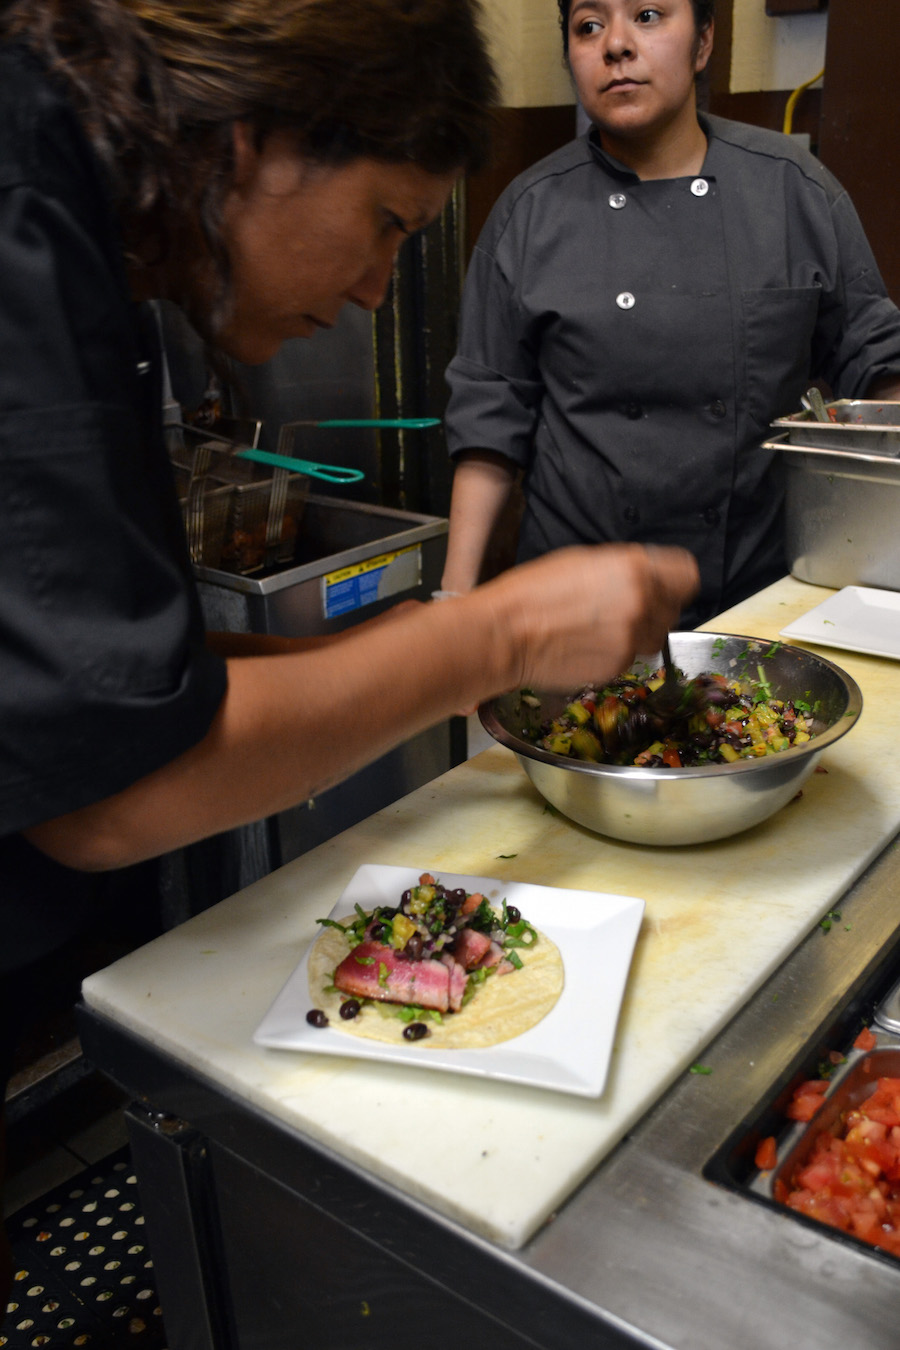 Salazar prepares tacos for Te Amo Tequila's new menu alongside Chef Elisa Cordero of Barracuda.